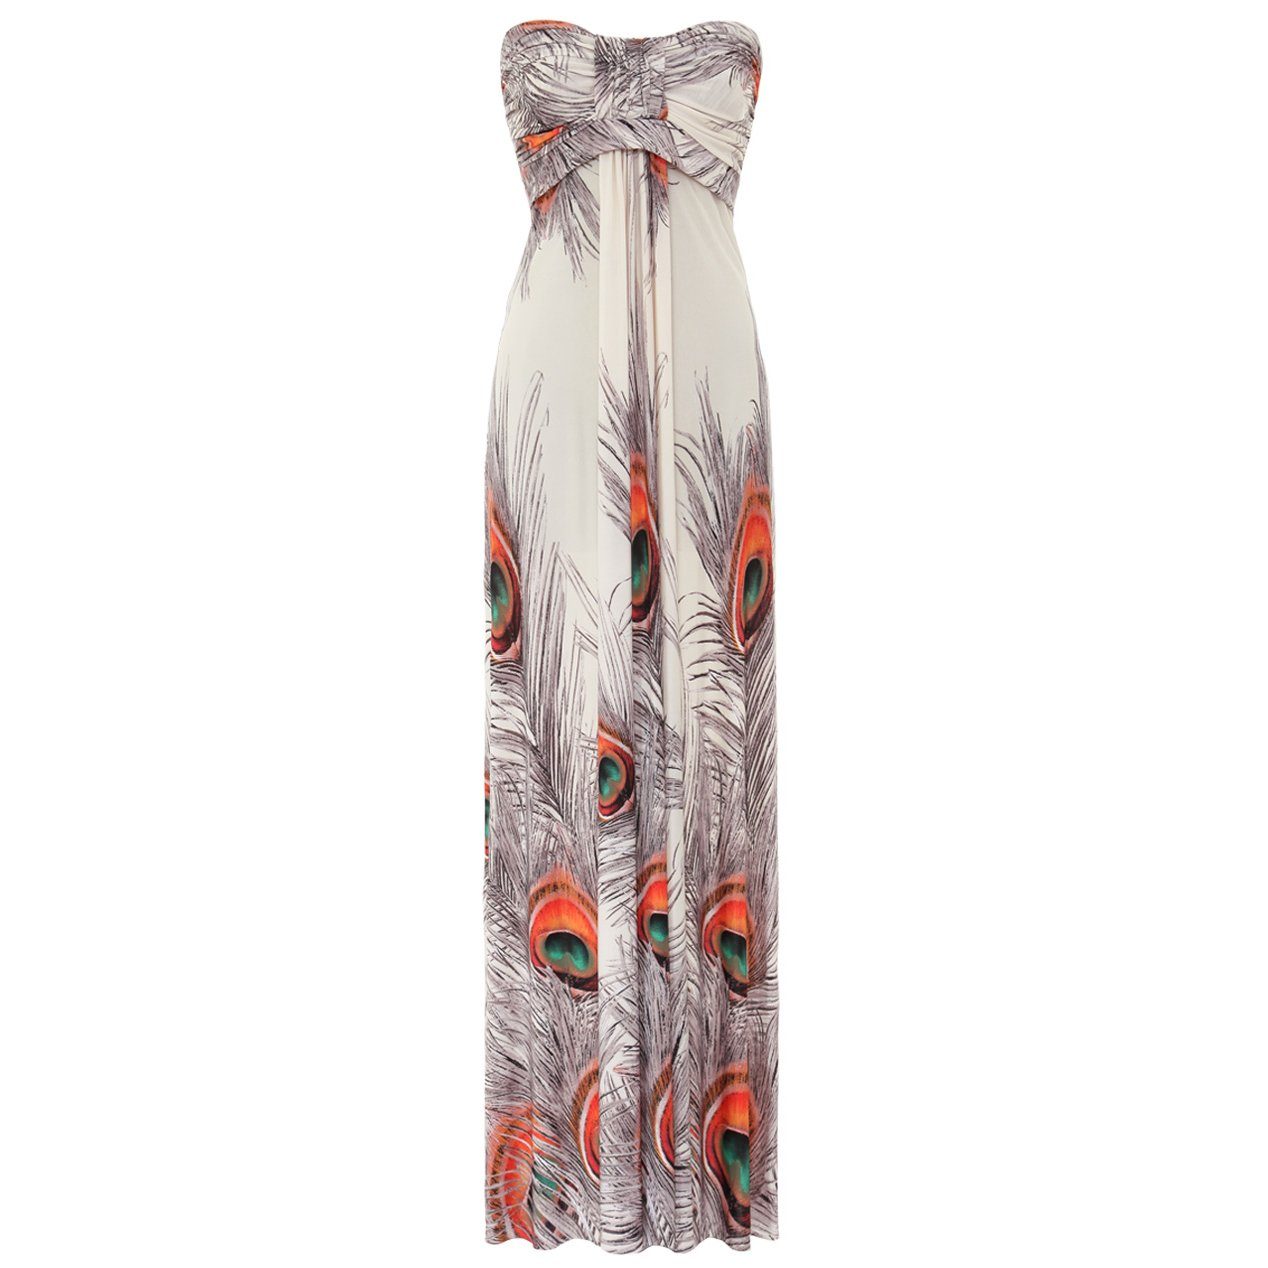 WOMENS WHITE ORANGE PEACOCK PRINT LONG SUMMER EVENING HOLIDAY BEACH MAXI DRESS UK 8-10, US 4-6